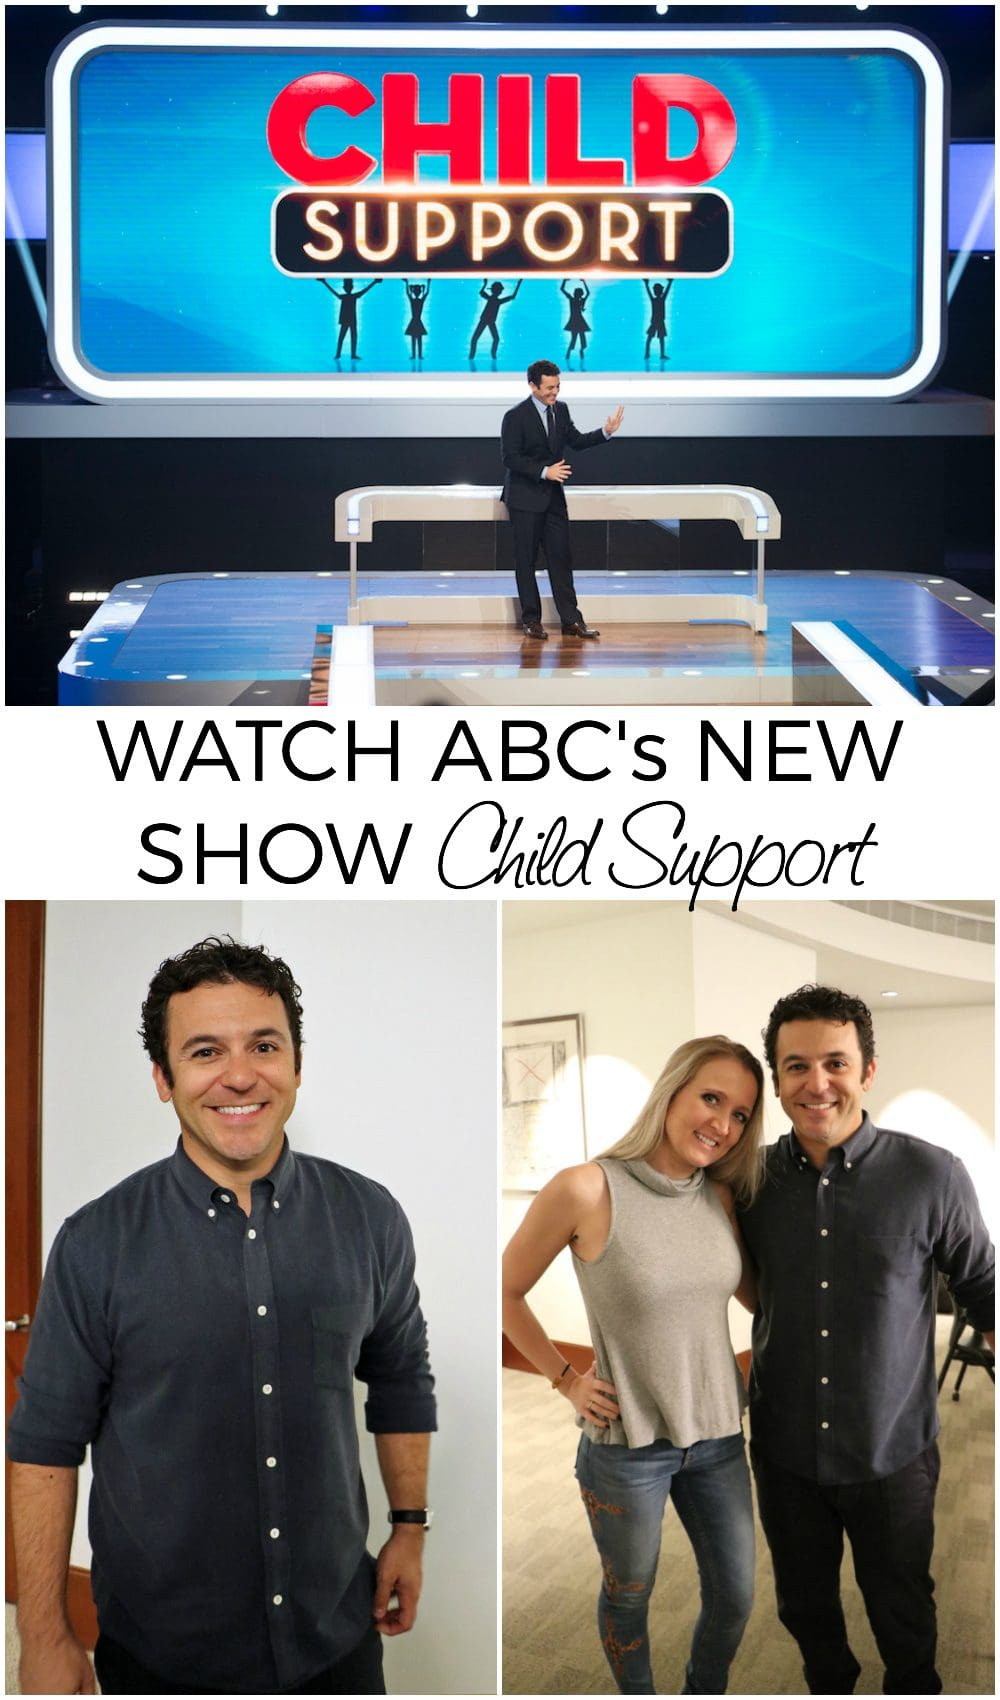 Fred Savage is Hosting the New Child Support Show #ABCTVEvent #ChildSupportABC AD